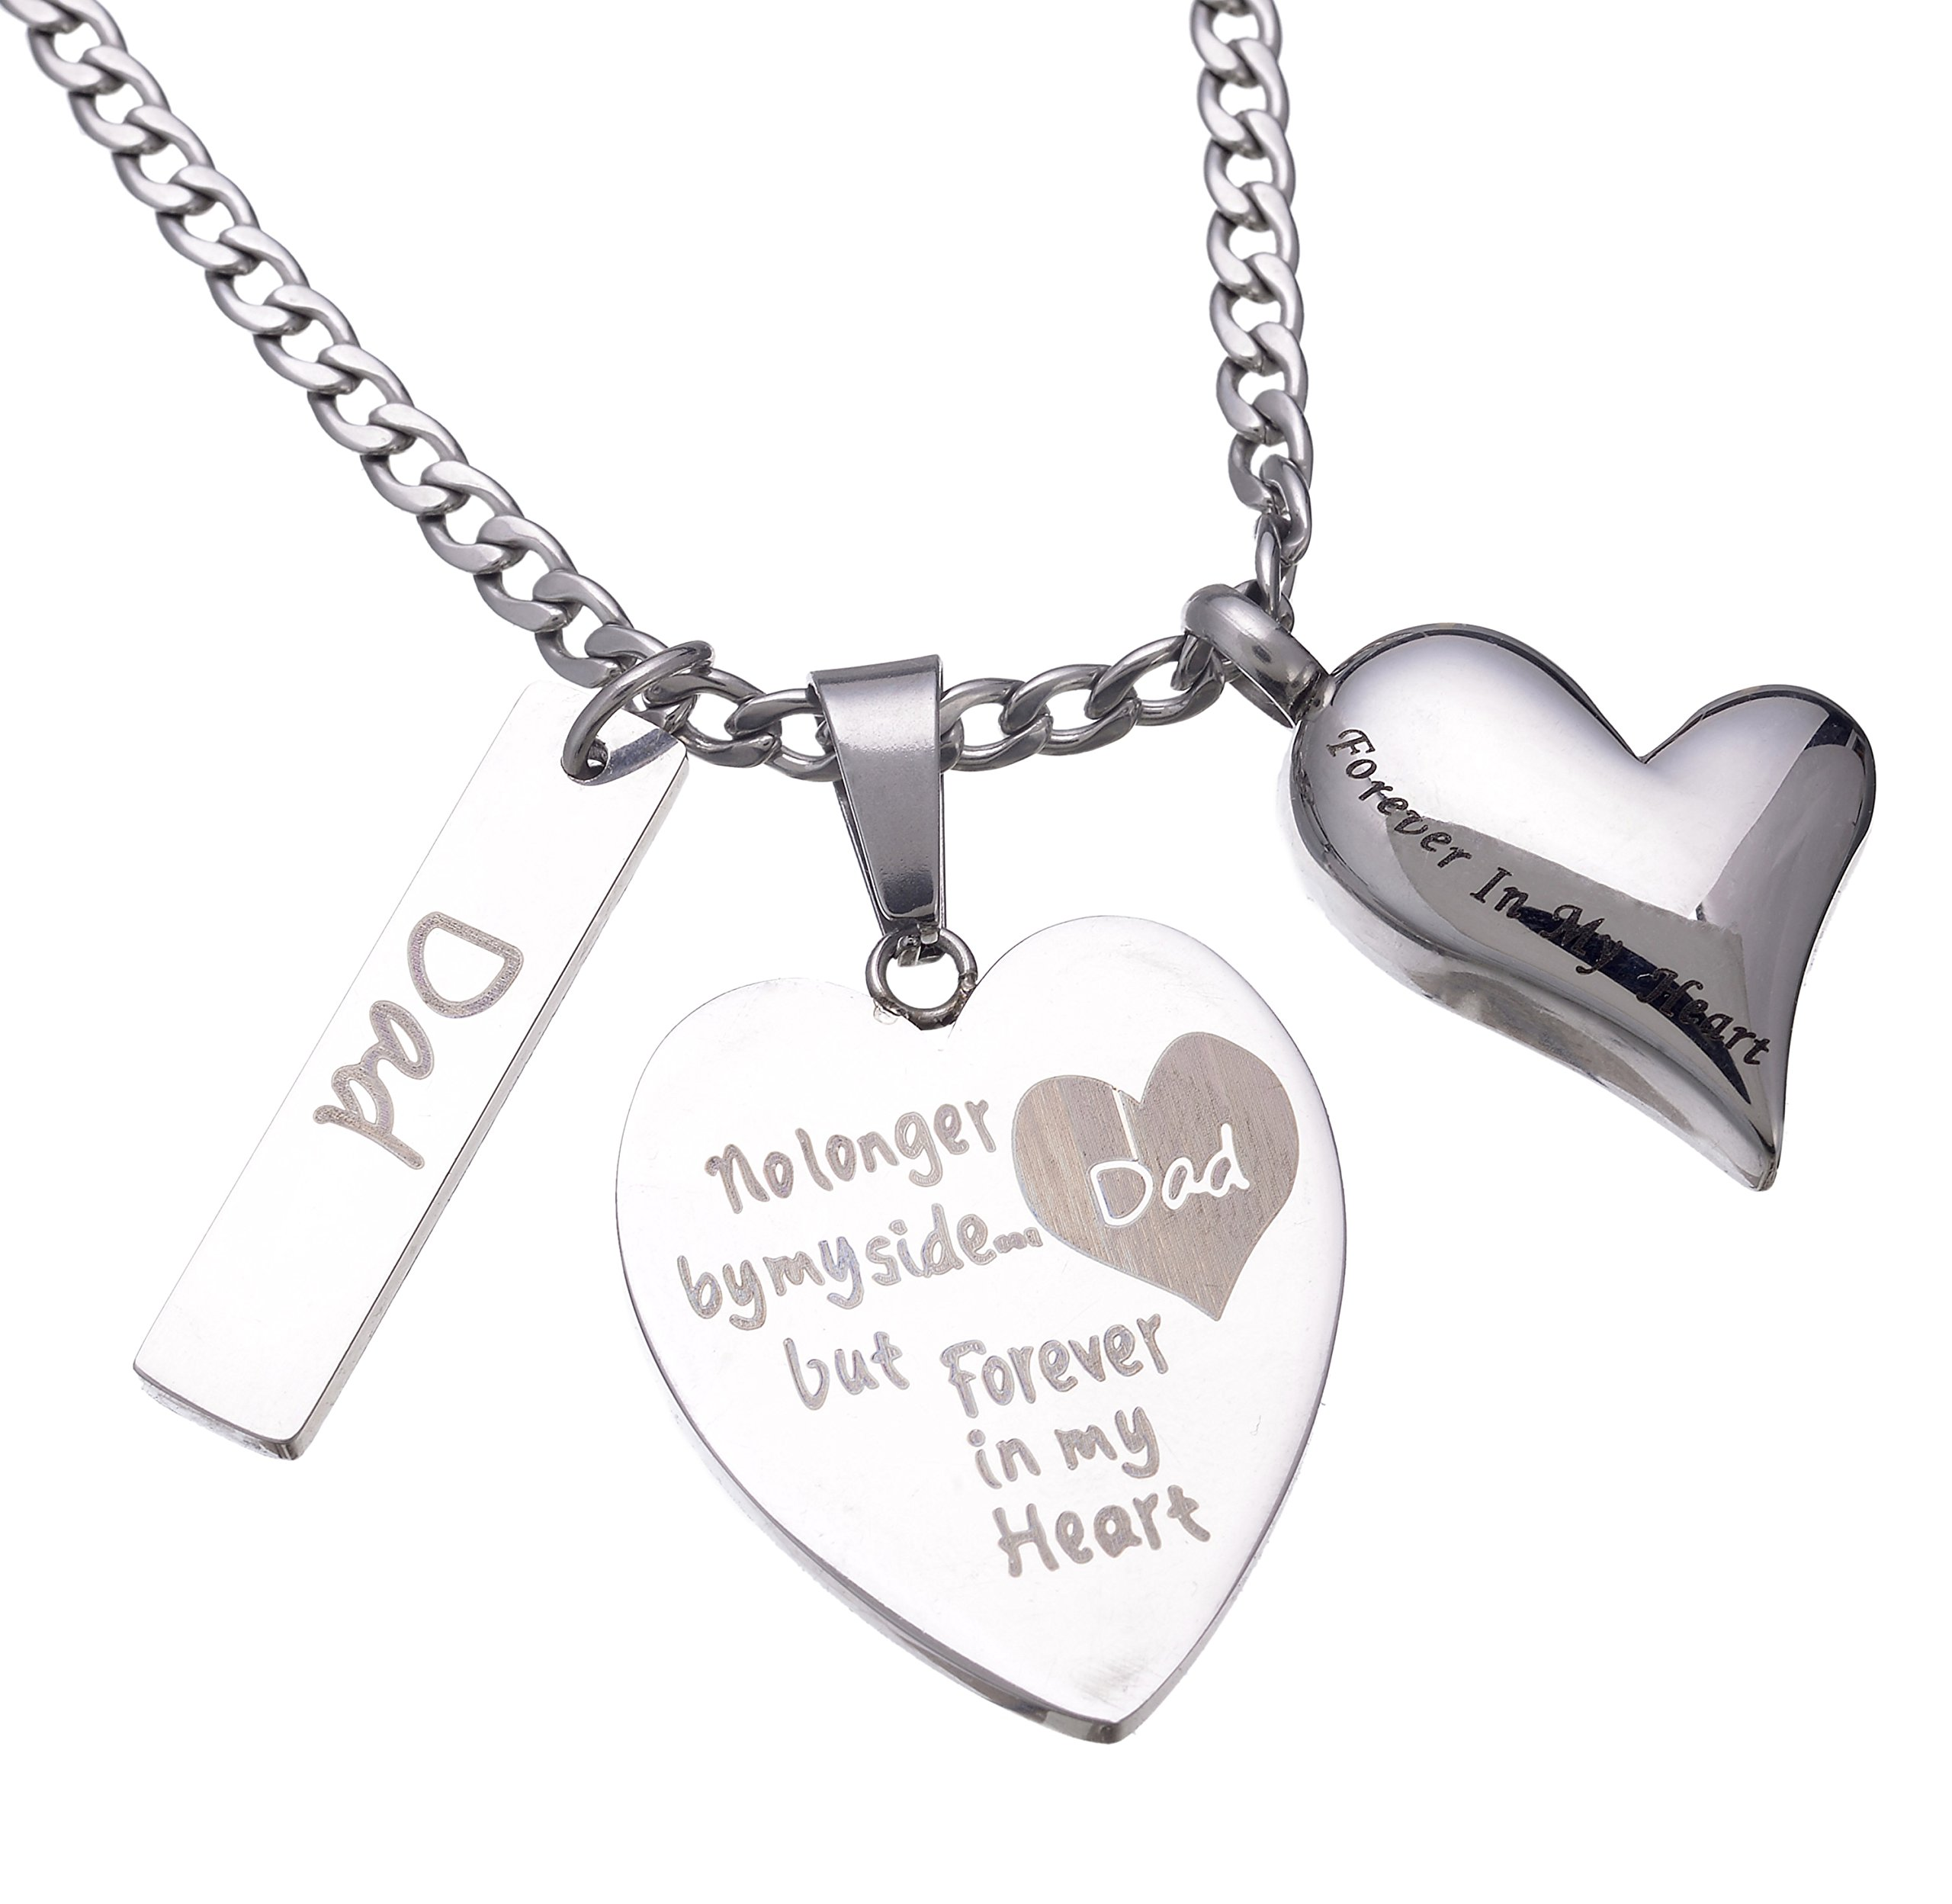 Urn Necklaces for Ashes for Dad,No Longer by My Side Forever in My Heart Cremation Pendant Memorial Jewelry